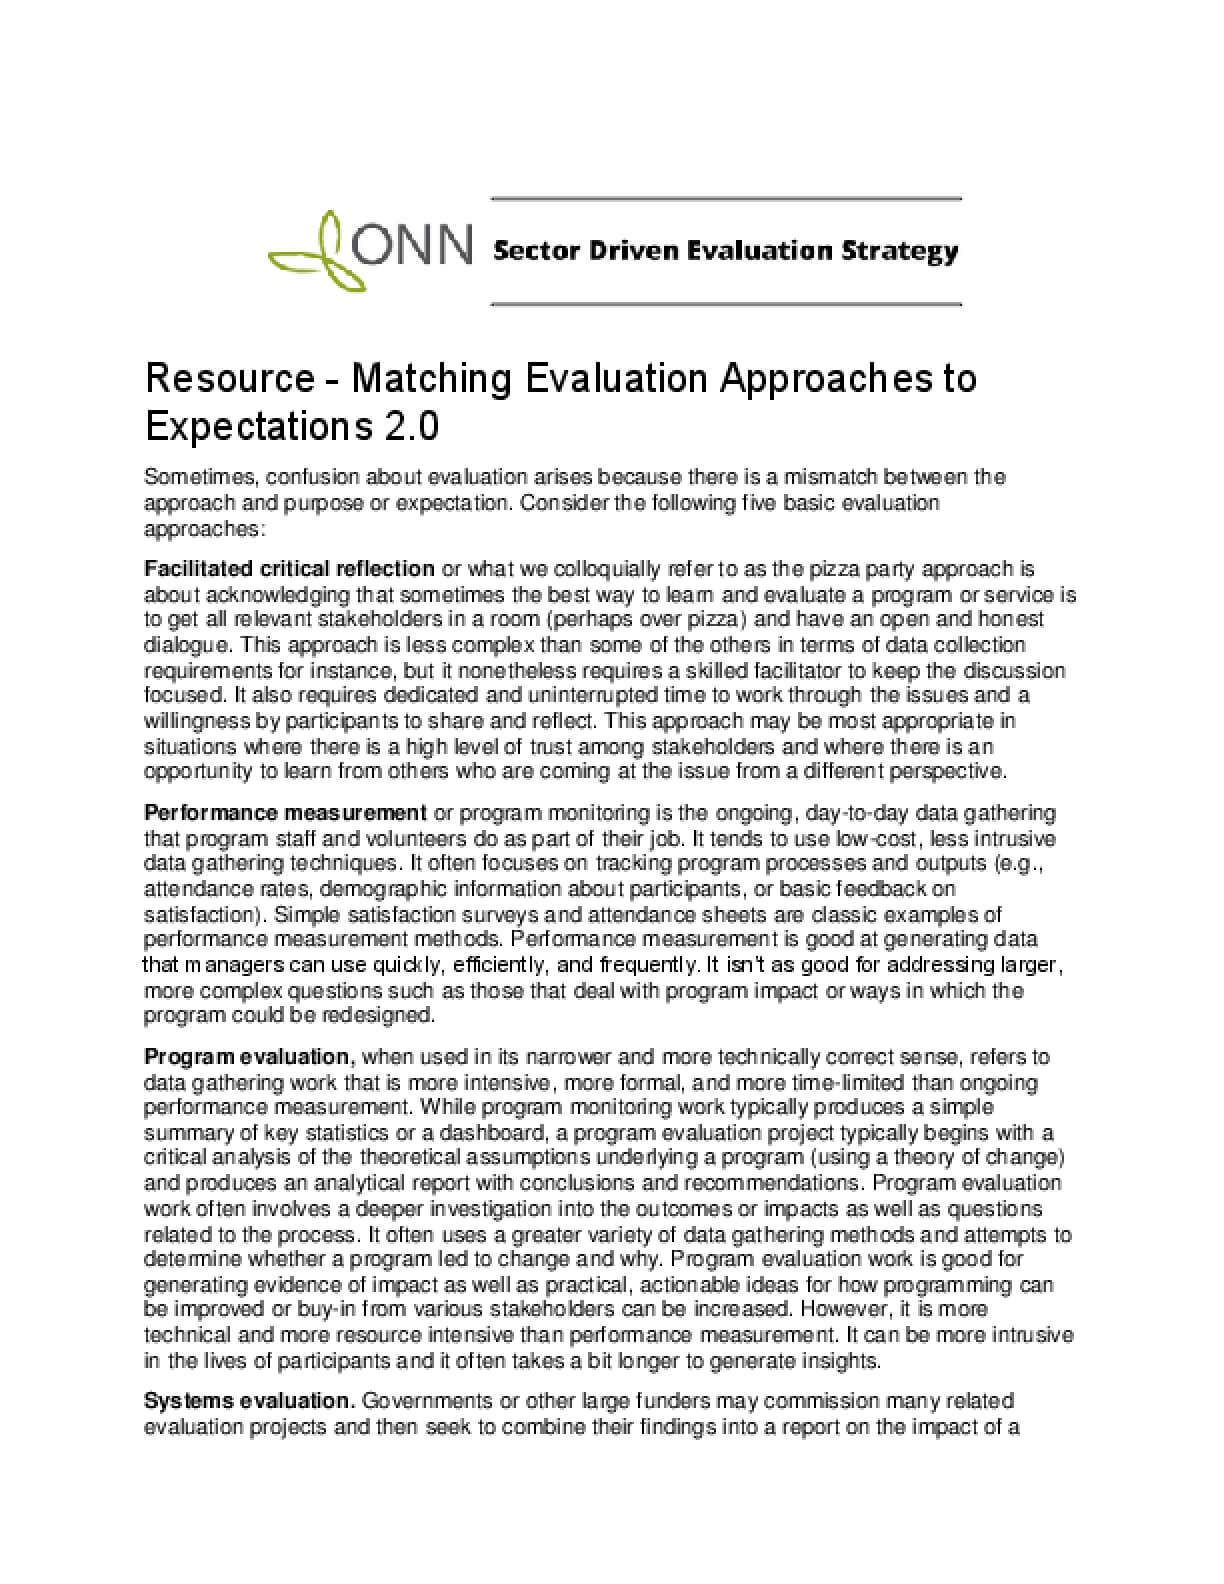 Matching Evaluation Approaches to Expectations